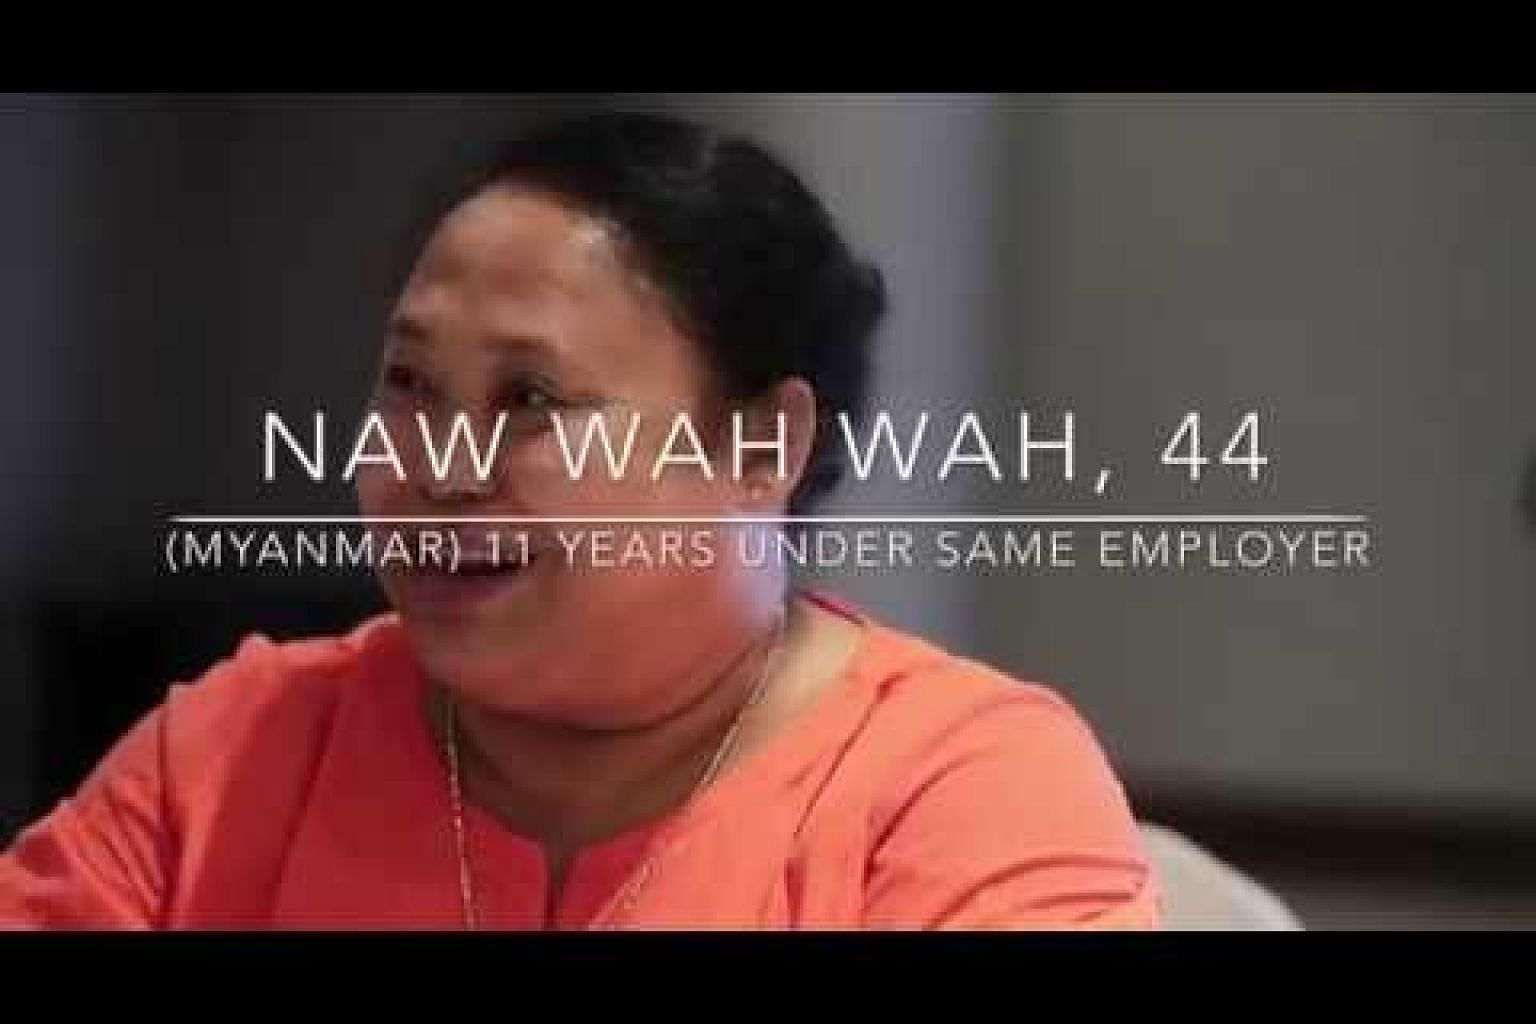 Interview with domestic worker Ms Naw Wah Wah